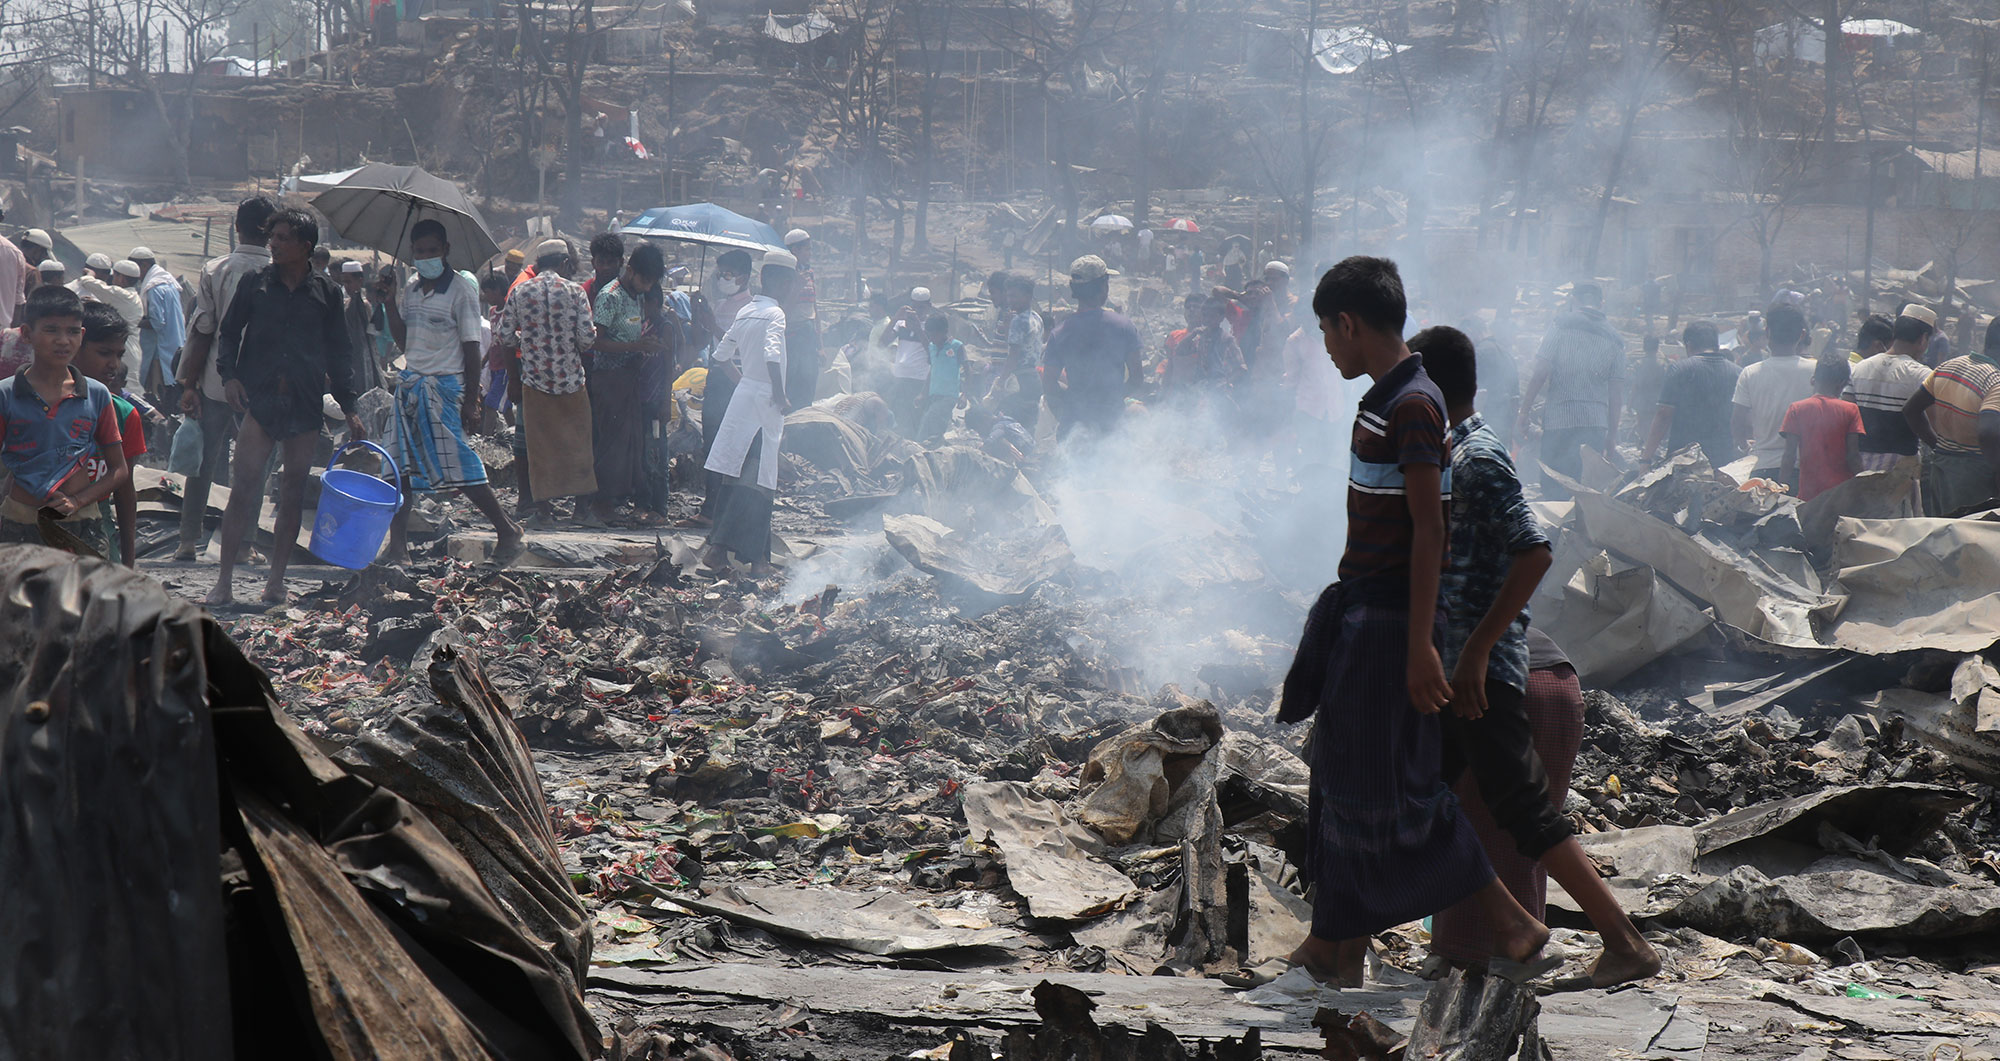 The aftermath of a fire in the Rohingya refugee camps